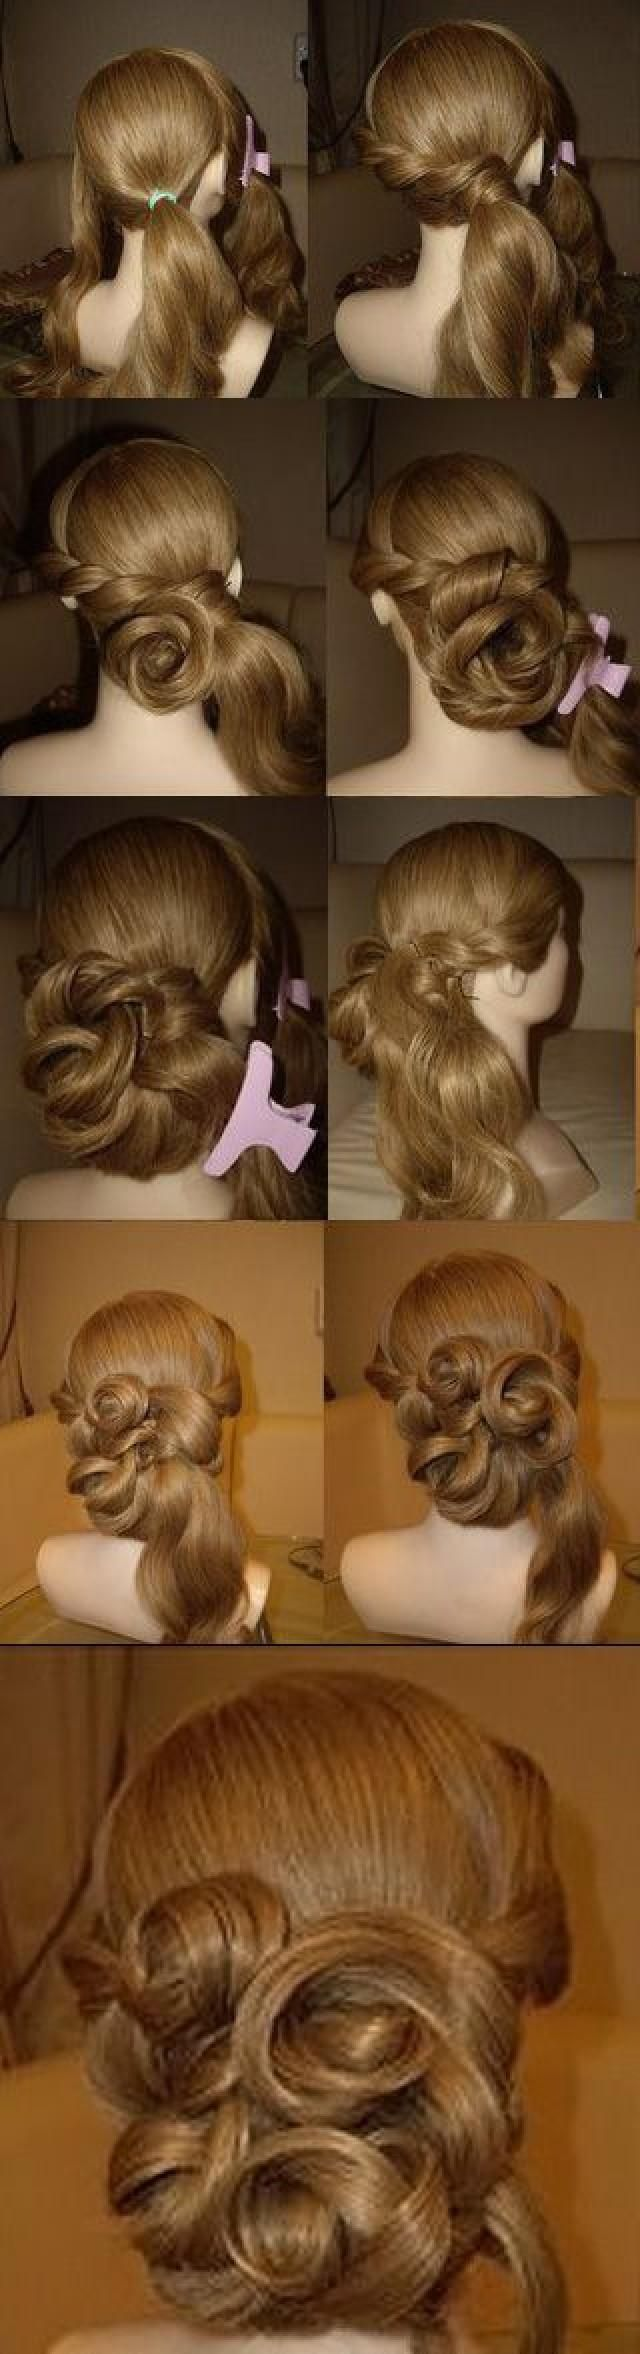 Ha Hair Accessories For Apostolic Long Hair - How to create amazing hairdo for long hair tutorial for evening hair style